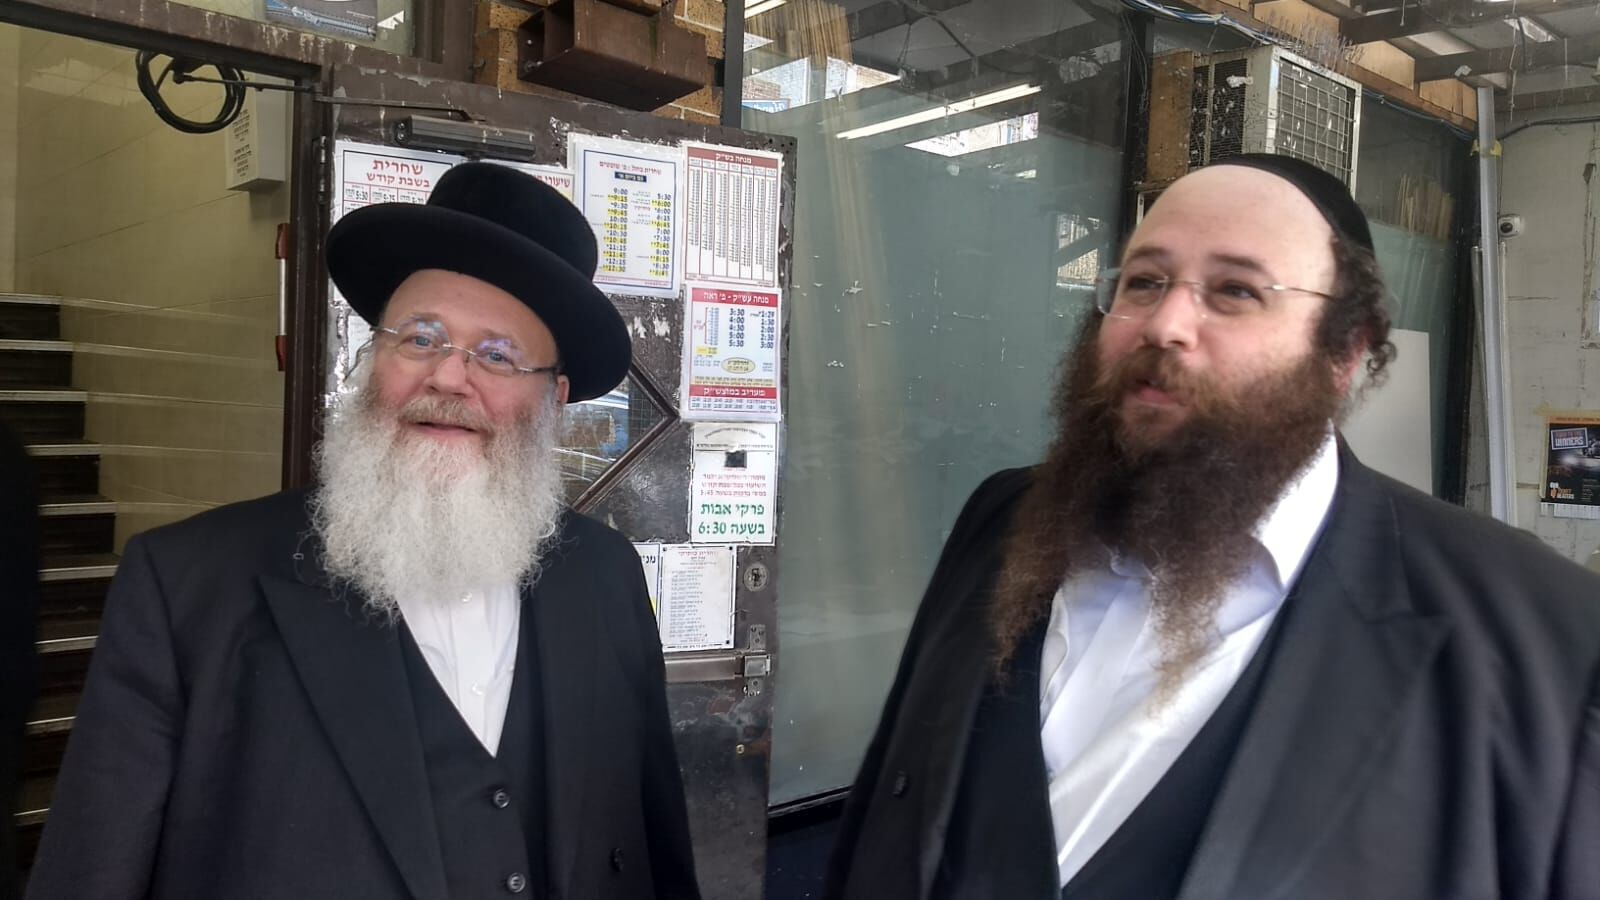 Yosef Rapaport, left, and his son Alexander do not feel that life has become more dangerous for Orthodox Jews in Brooklyn. They say attacks on Jews are nothing new. (Photo/JTA-Ben Sales)